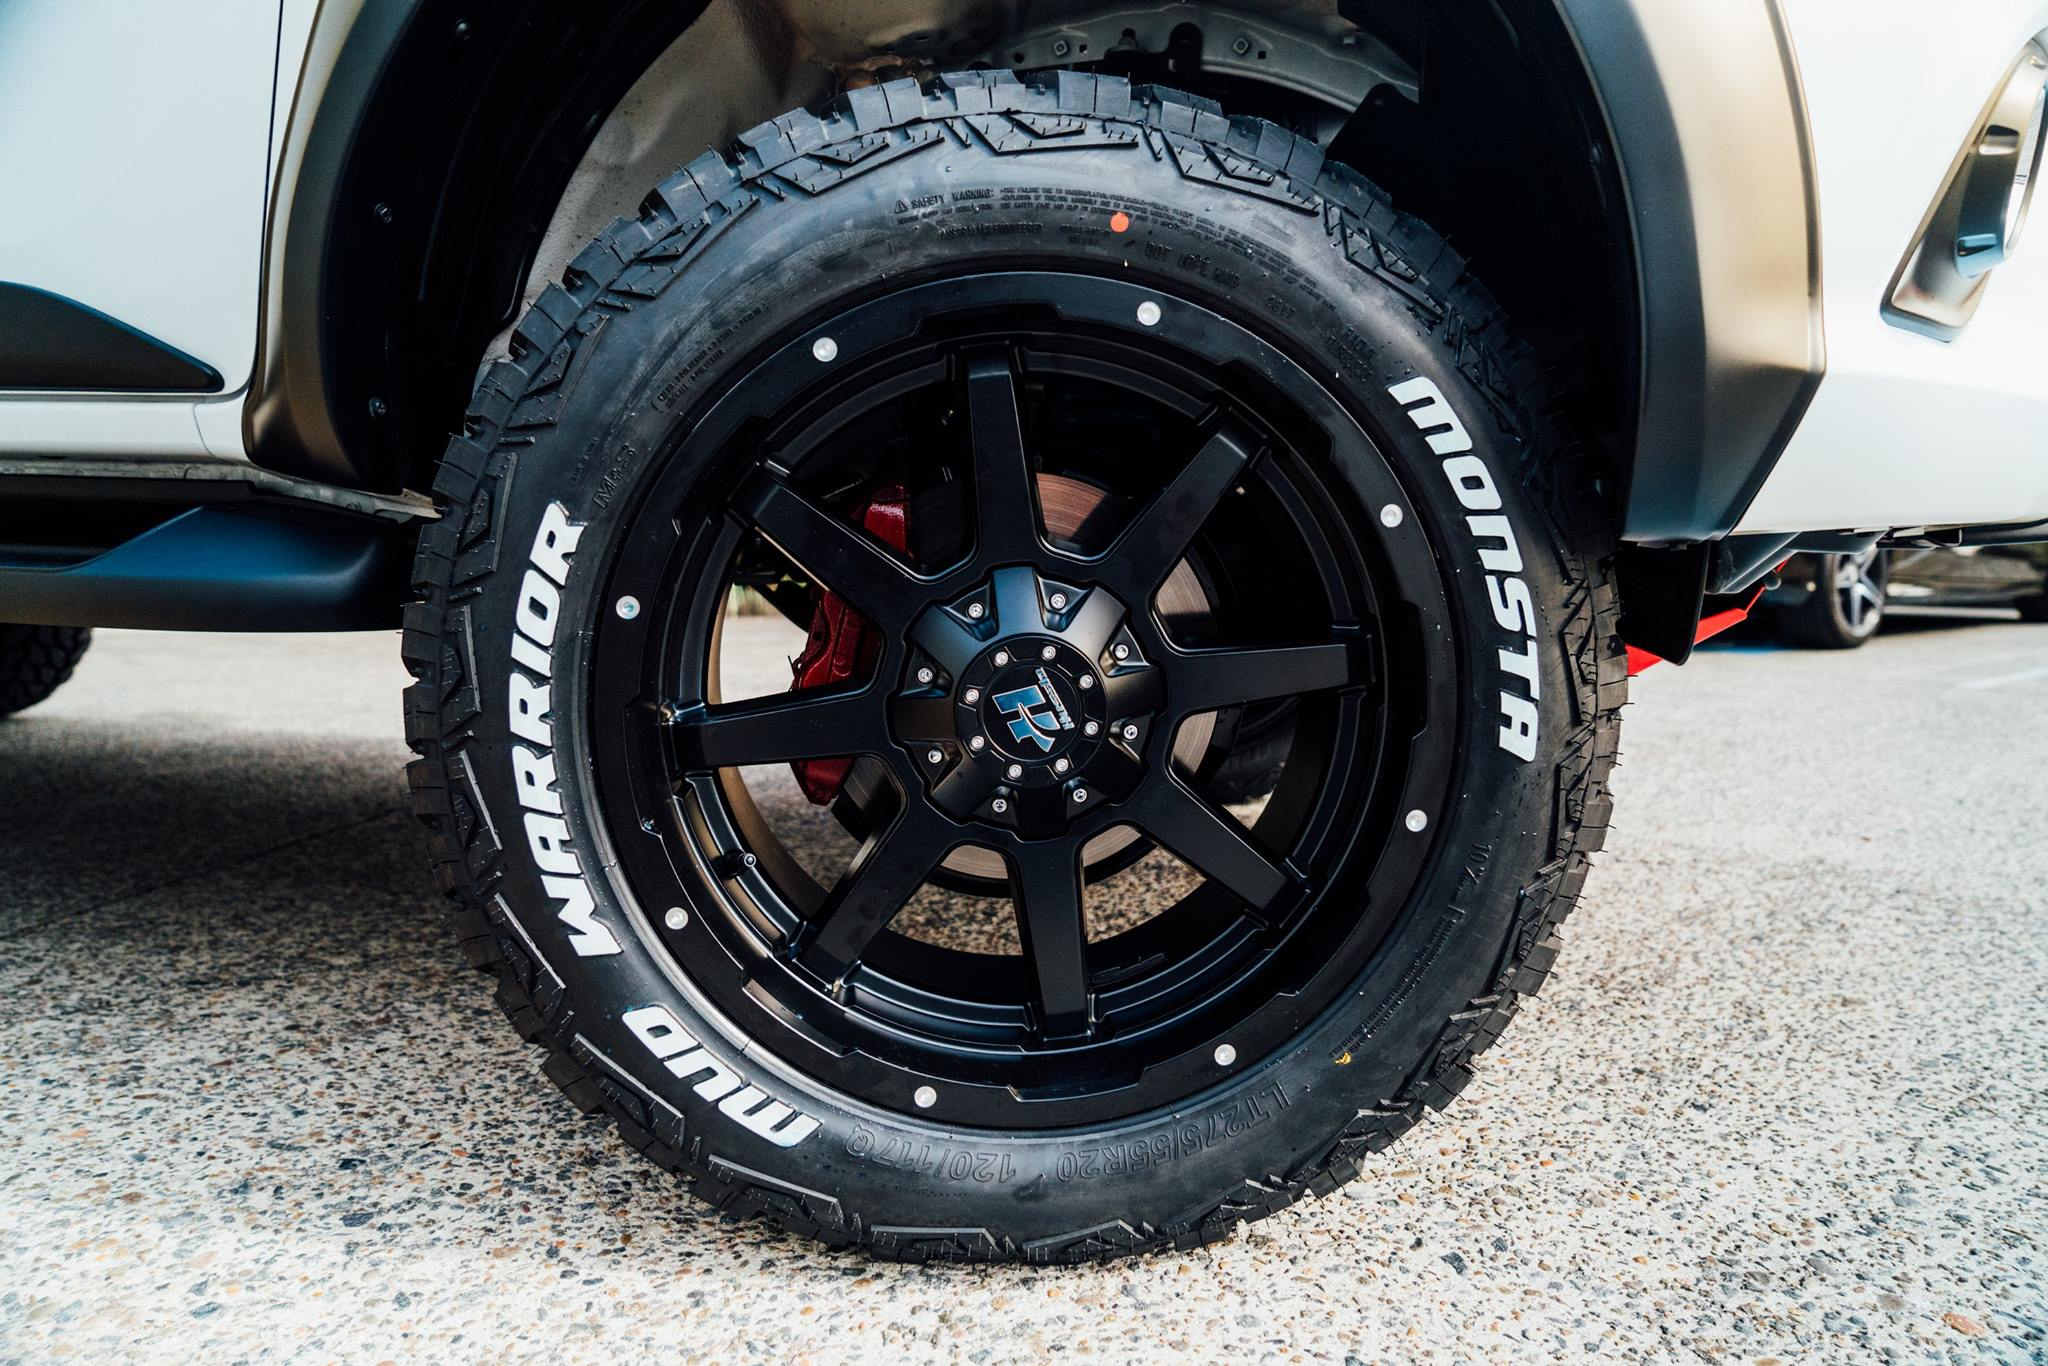 trd-hilux-to-be-upgraded-in-suspension-wheels-and-tyres-20x10-matte-black-hussla-stealths-and-wrapped-those-in-a-huge-profile-27555r2